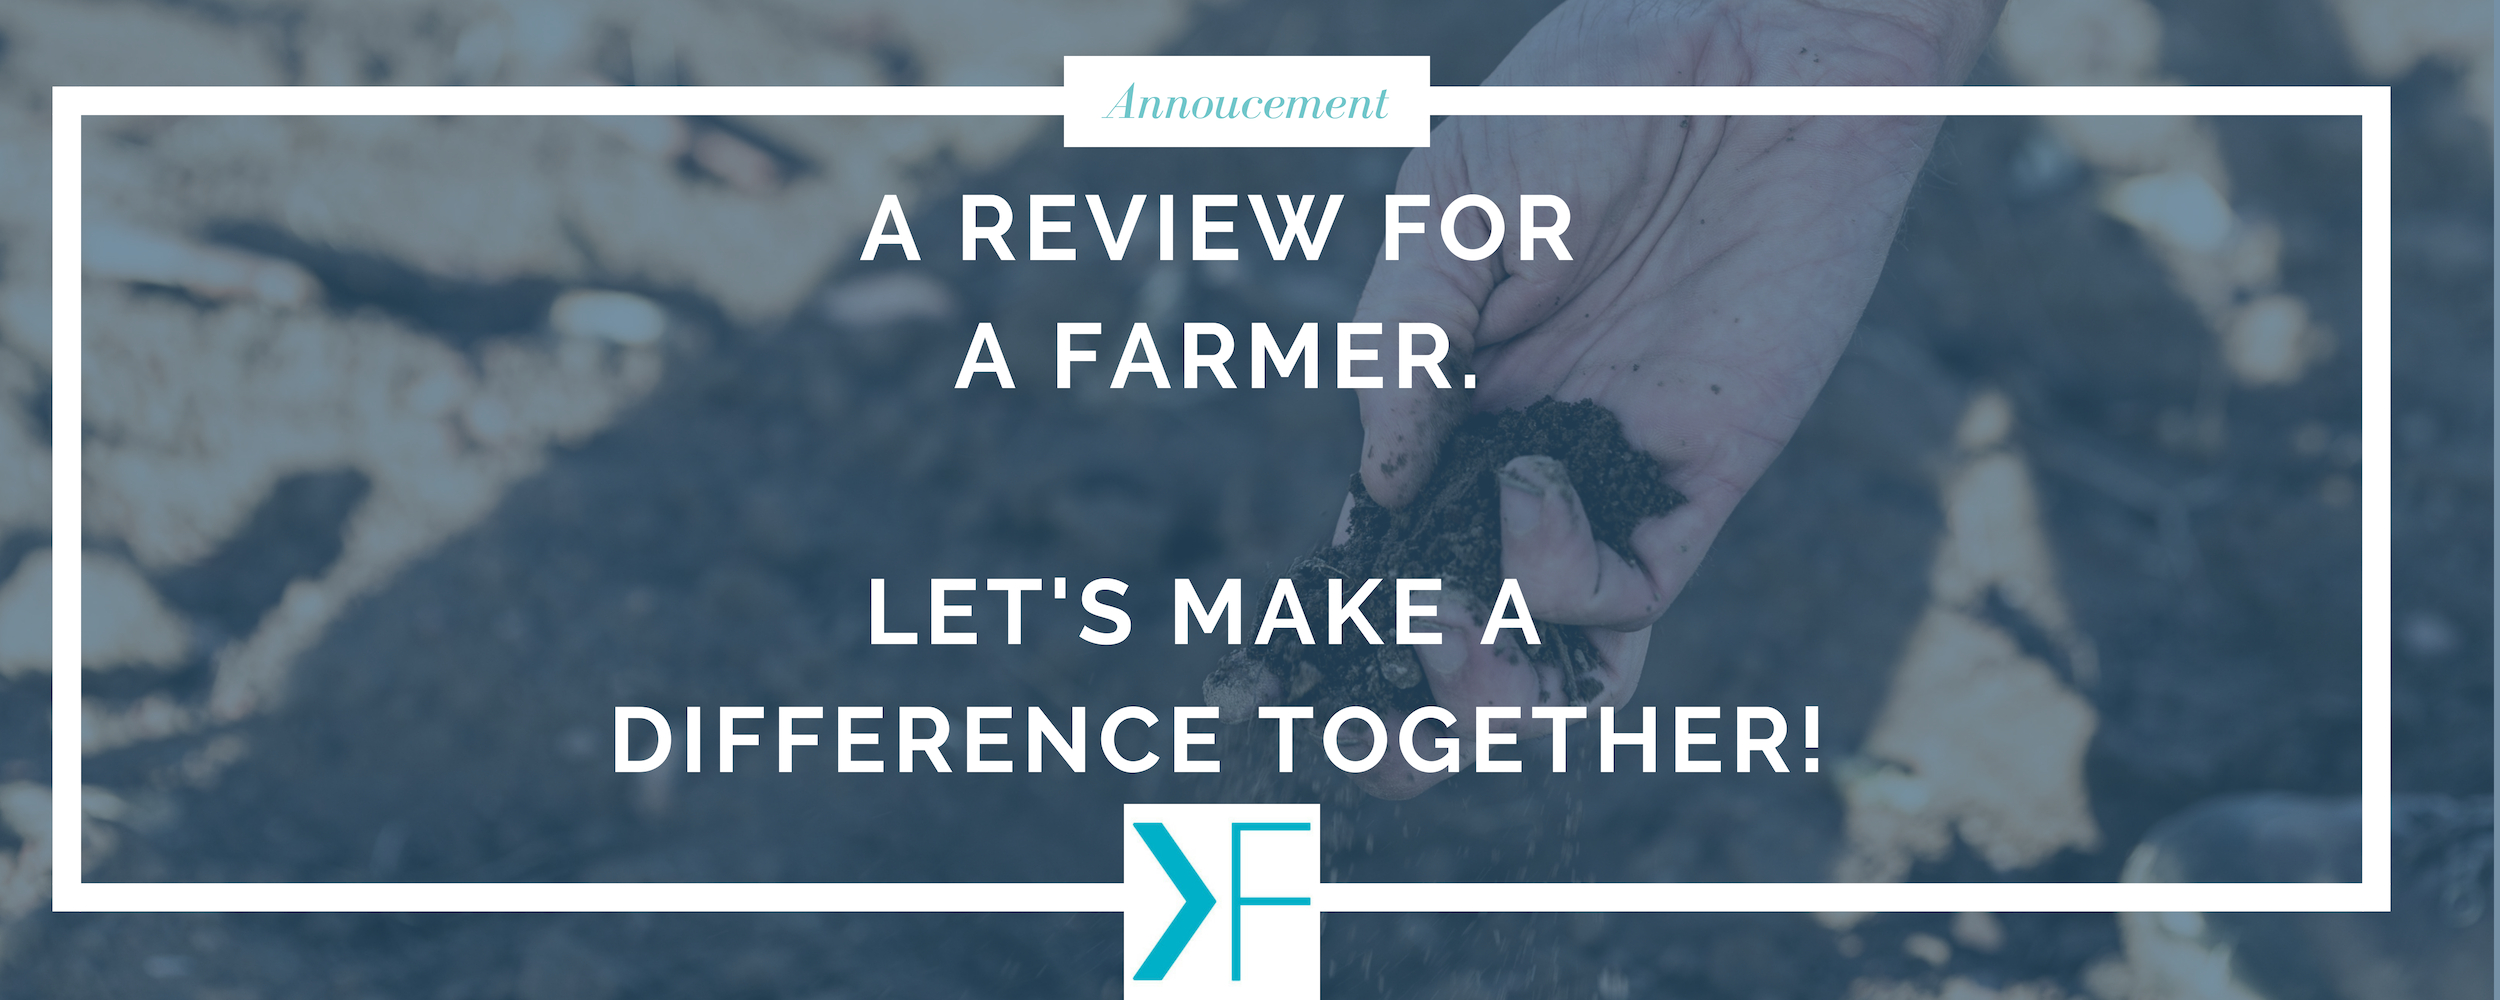 A review for a Farmer